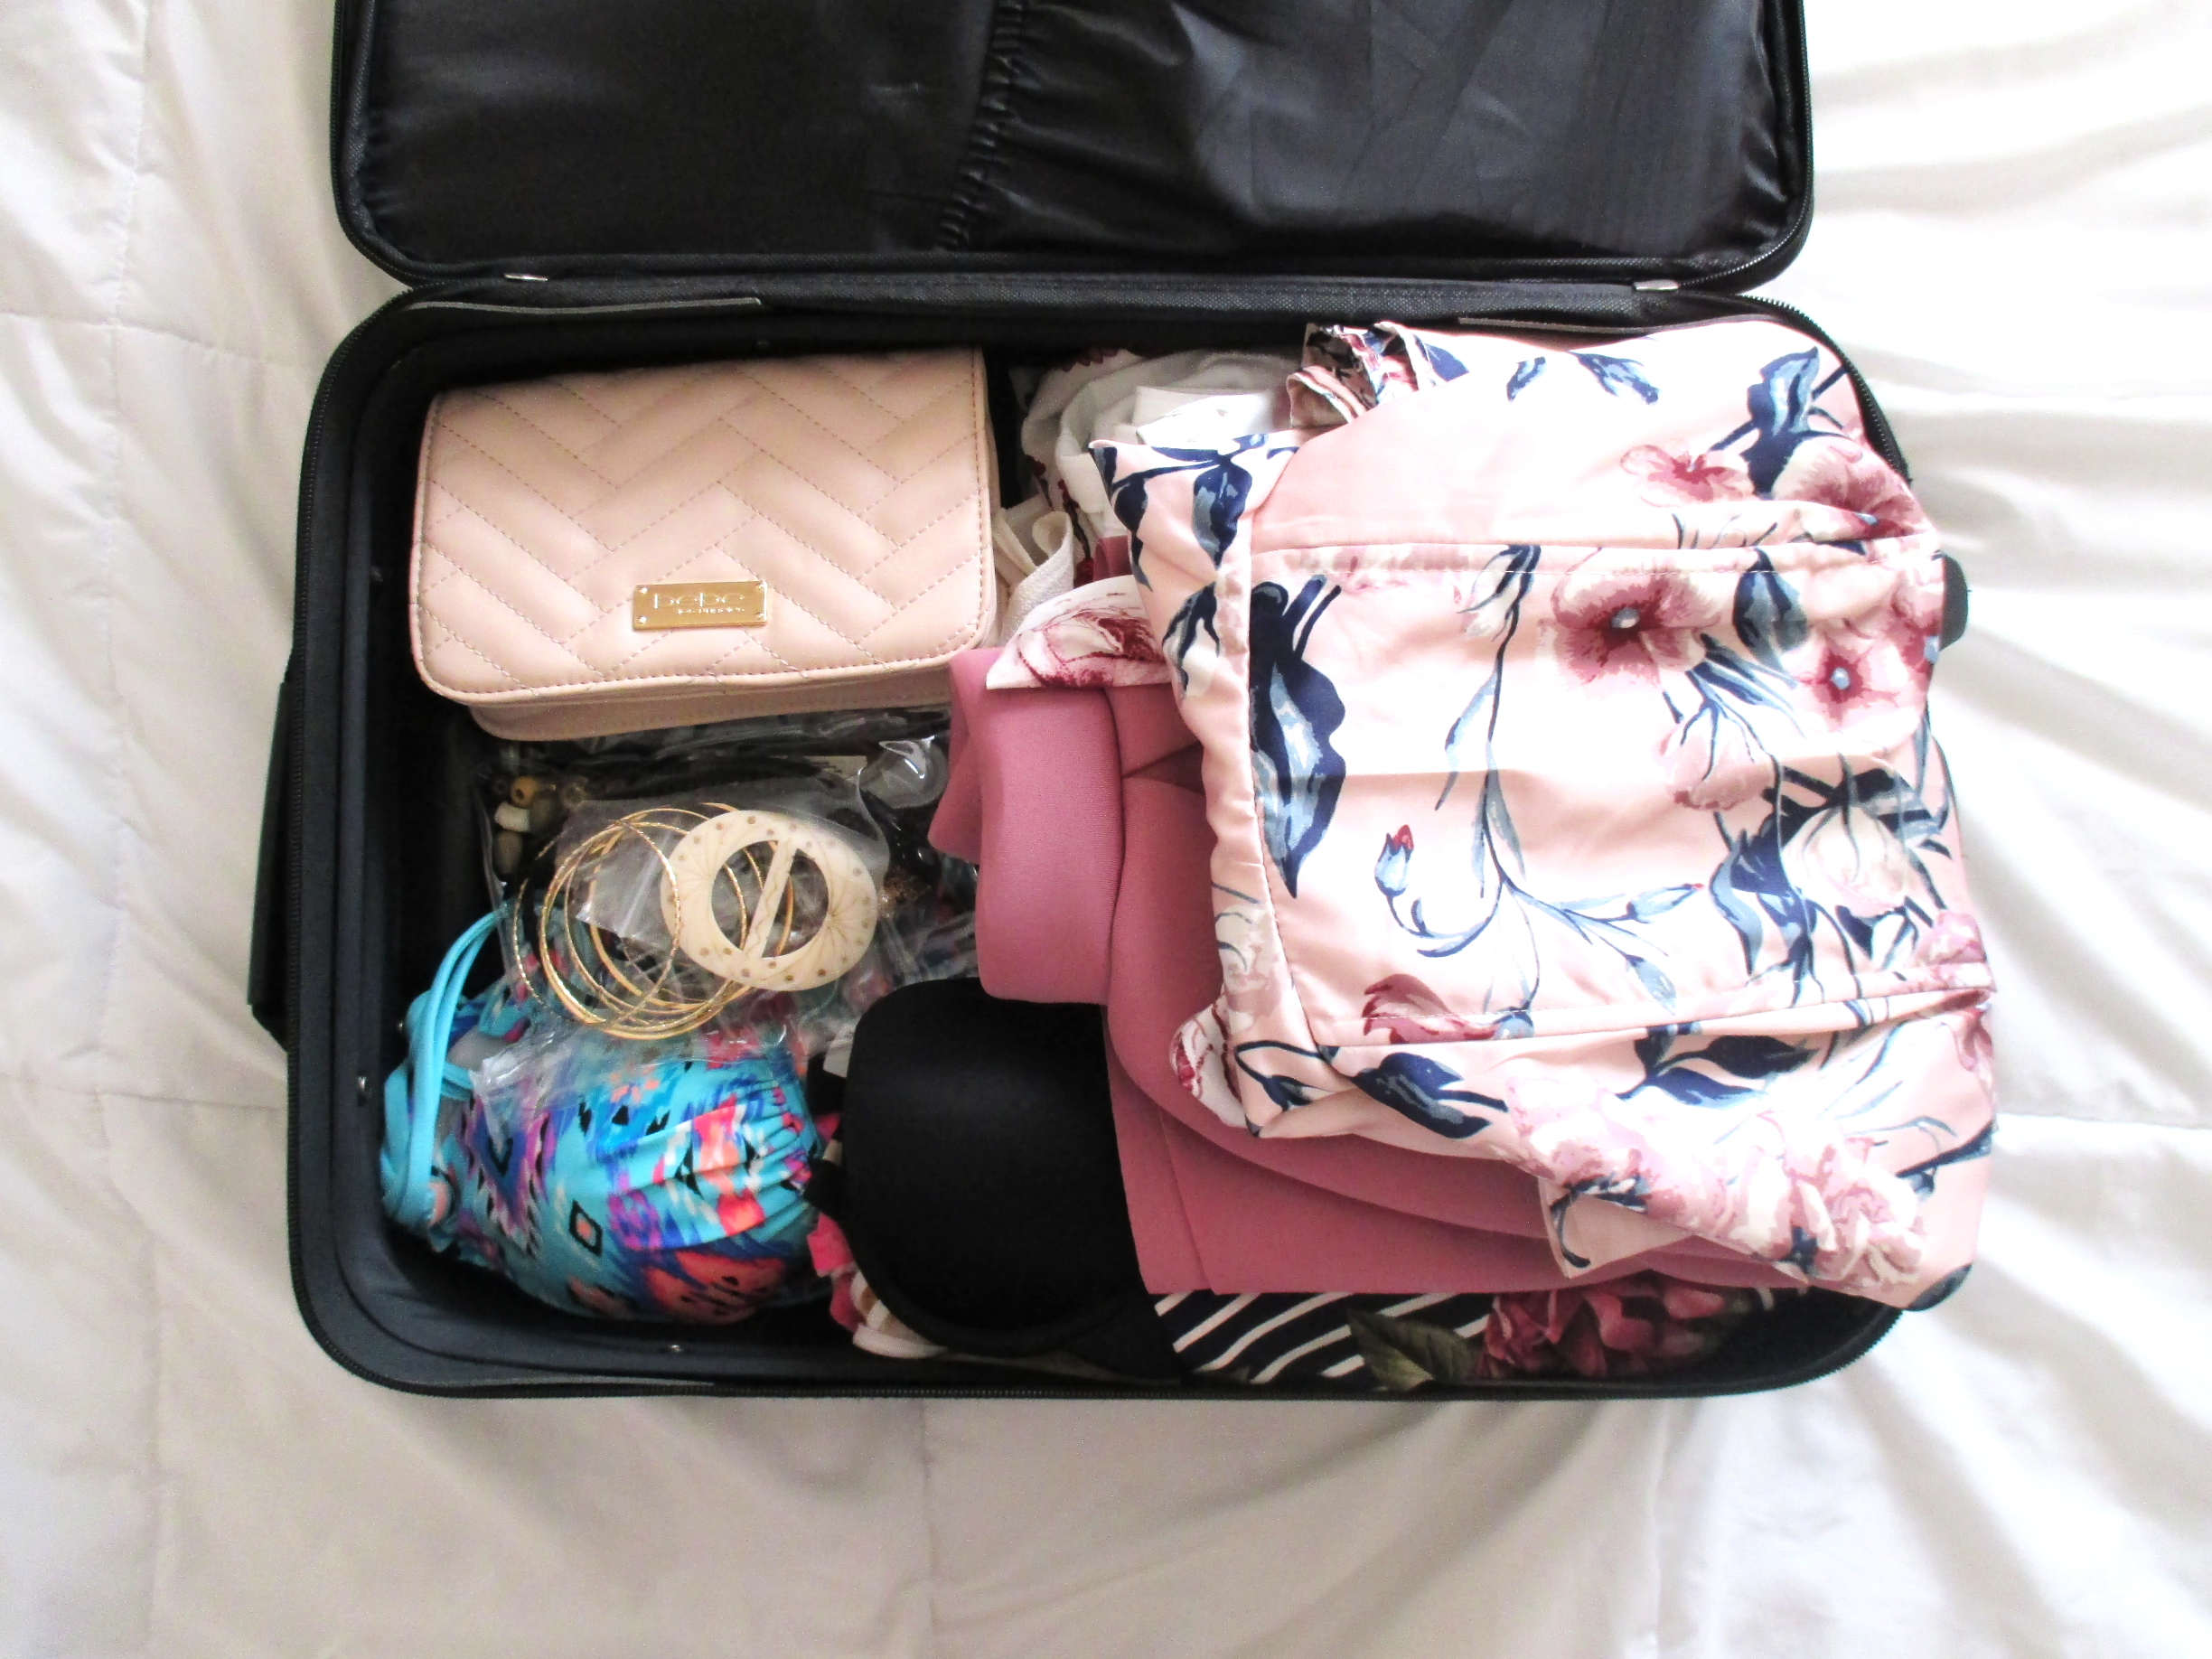 Traveling with only carry-on luggage